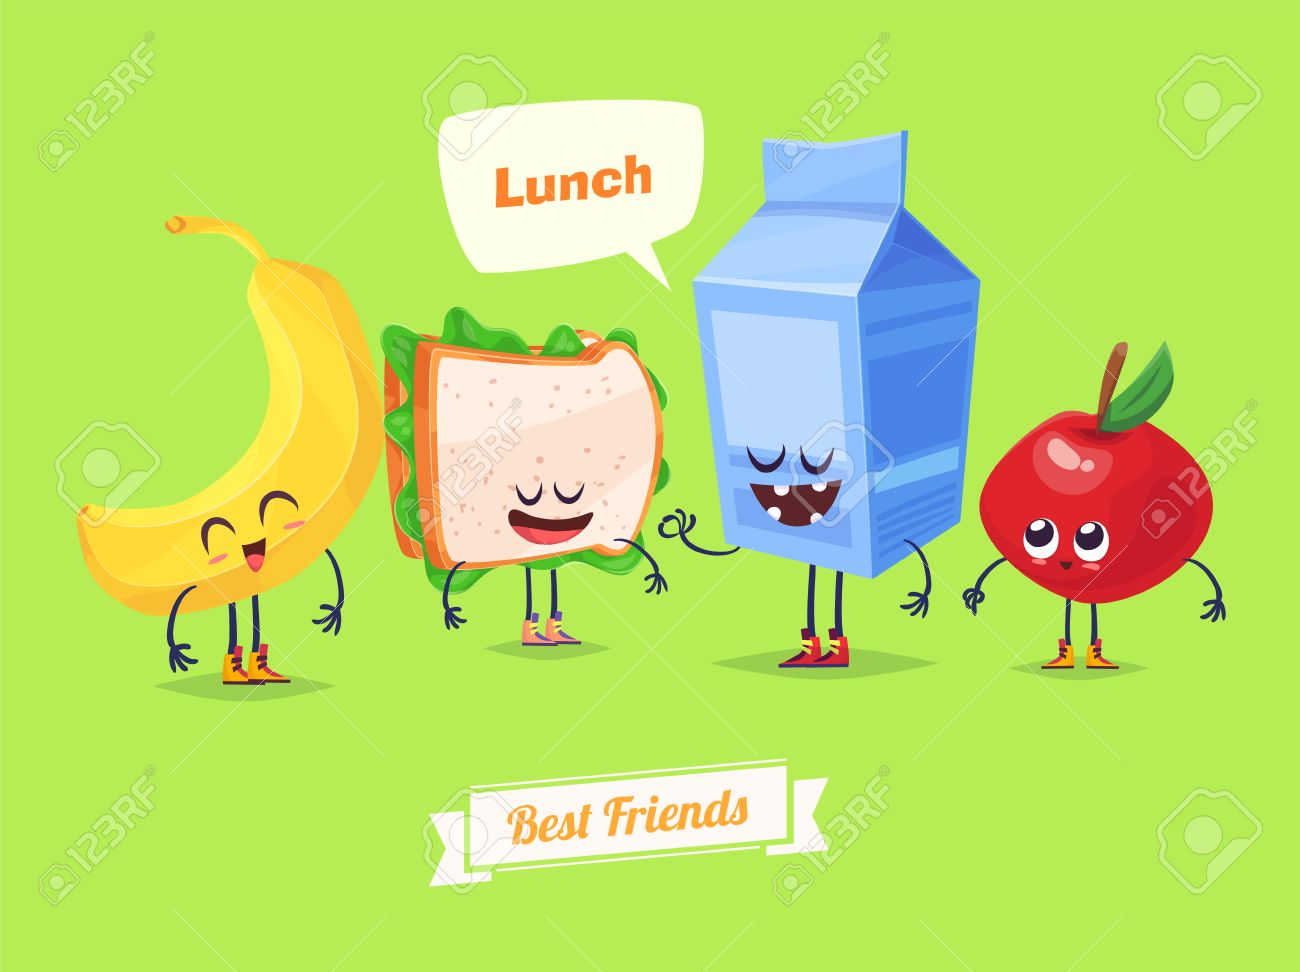 Best friends. Funny characters banana sandwich milk and apple. Funny food. - 52177706